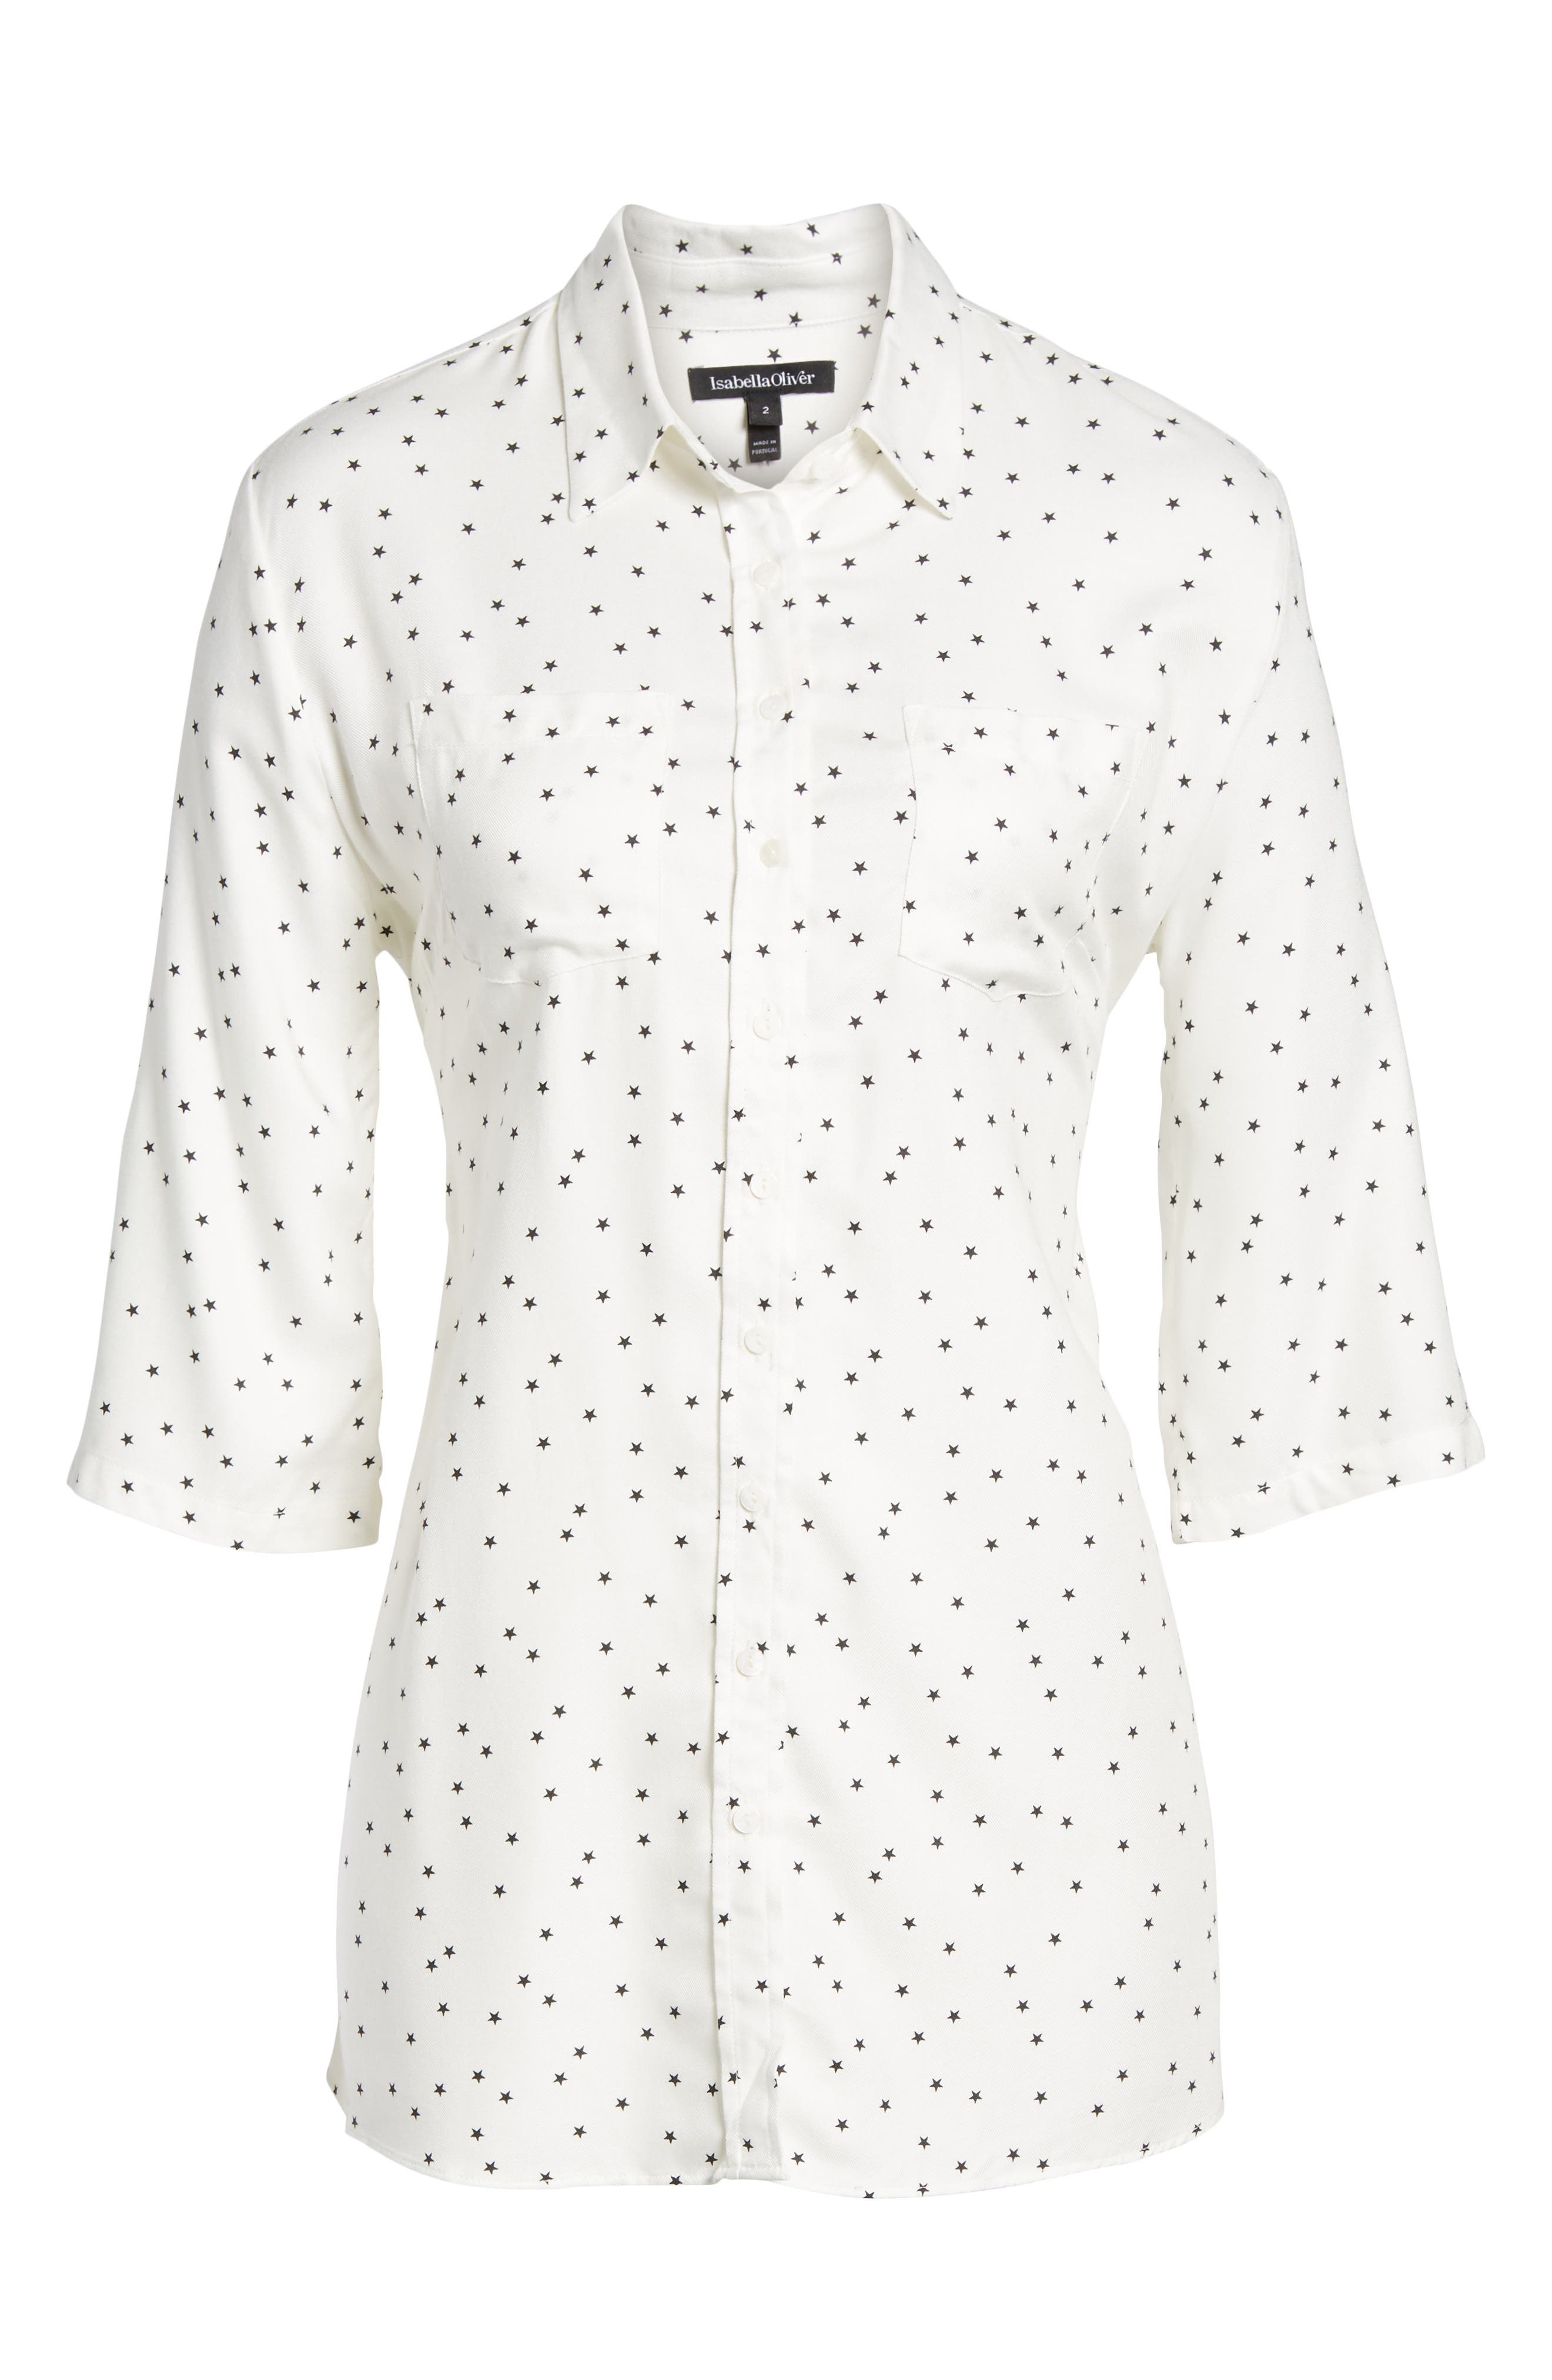 Selina Maternity Shirt,                             Alternate thumbnail 6, color,                             OFF WHITE STAR PRINT